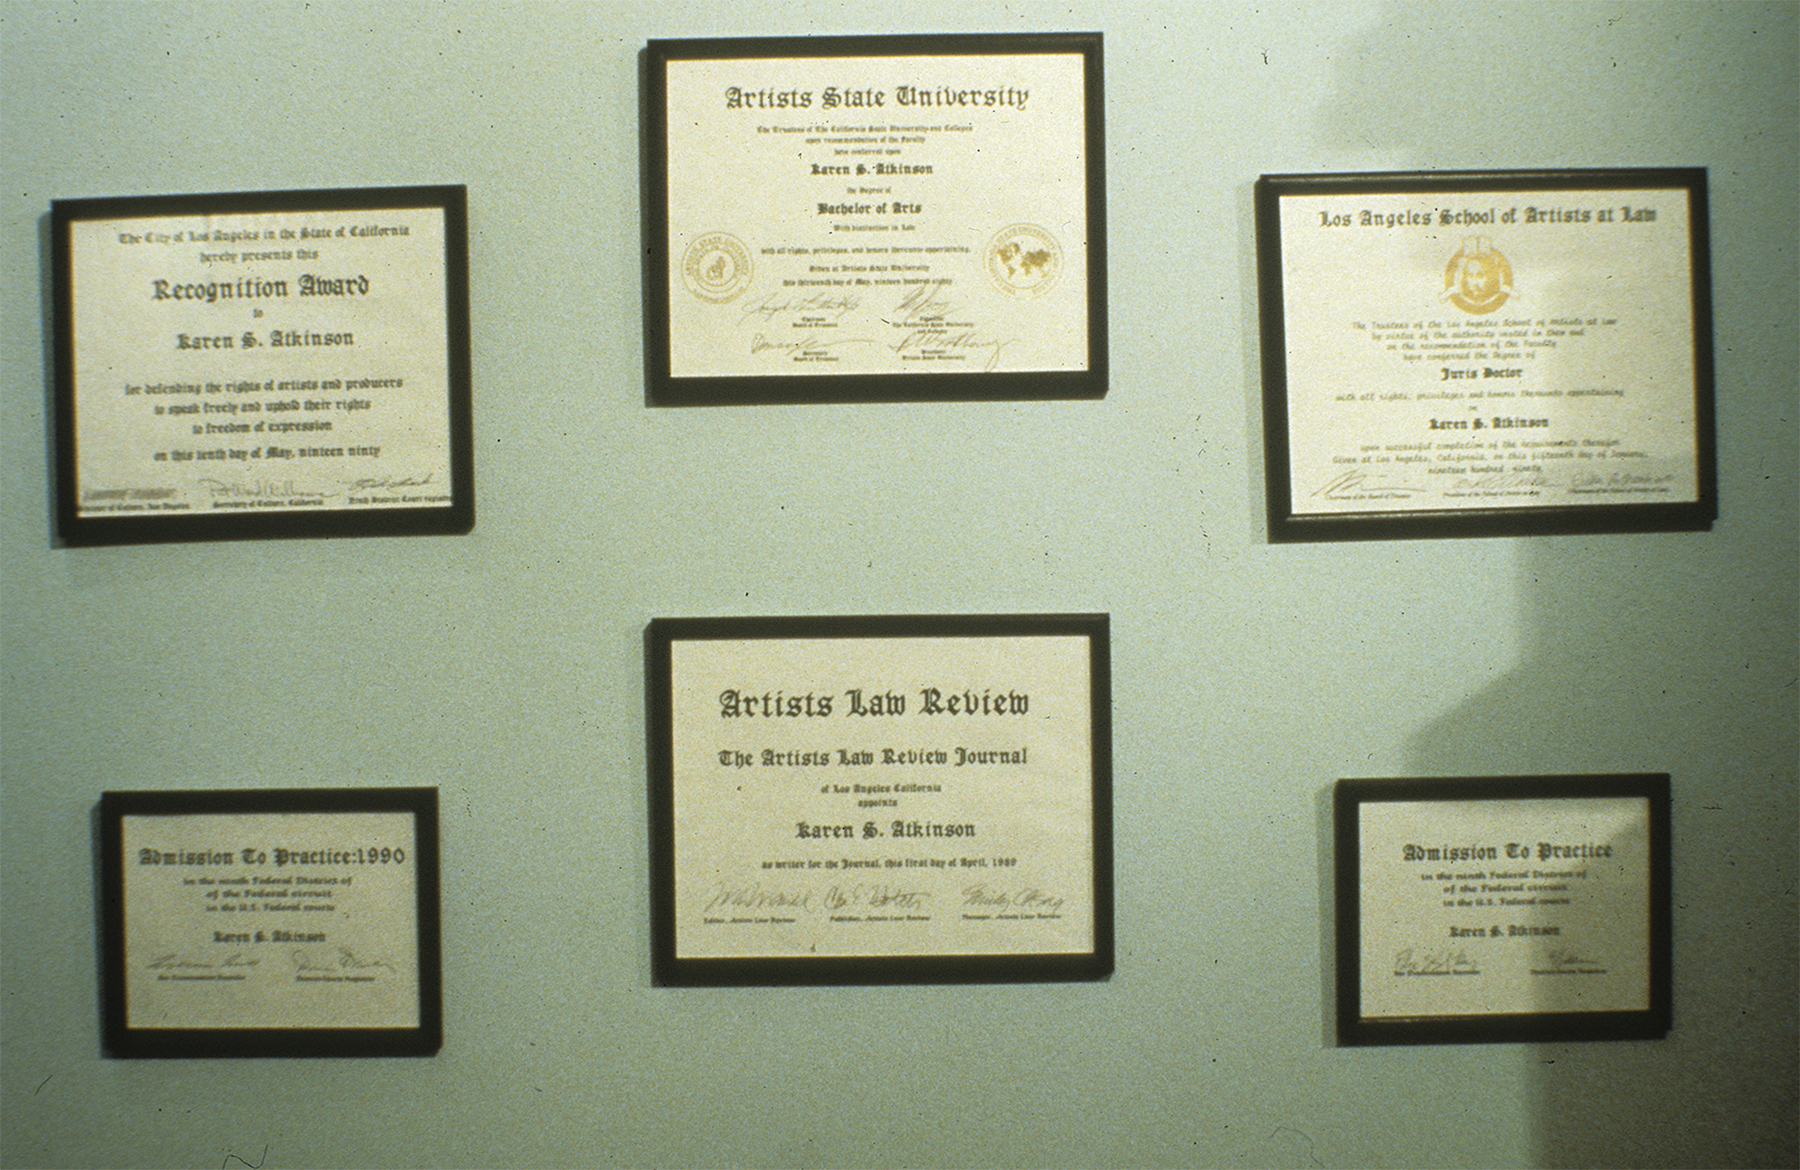 """ART PROTECTION SERVICES: Karen Atkinson and Associates, ARTtorneys At Work. The artist created these awards in order to """"practice law"""". If you look closely, you will see such signatures as Michael Asher, Doug Huebler, Connie Hatch, Emily Cheng, Erika Rotherberg and other artists."""